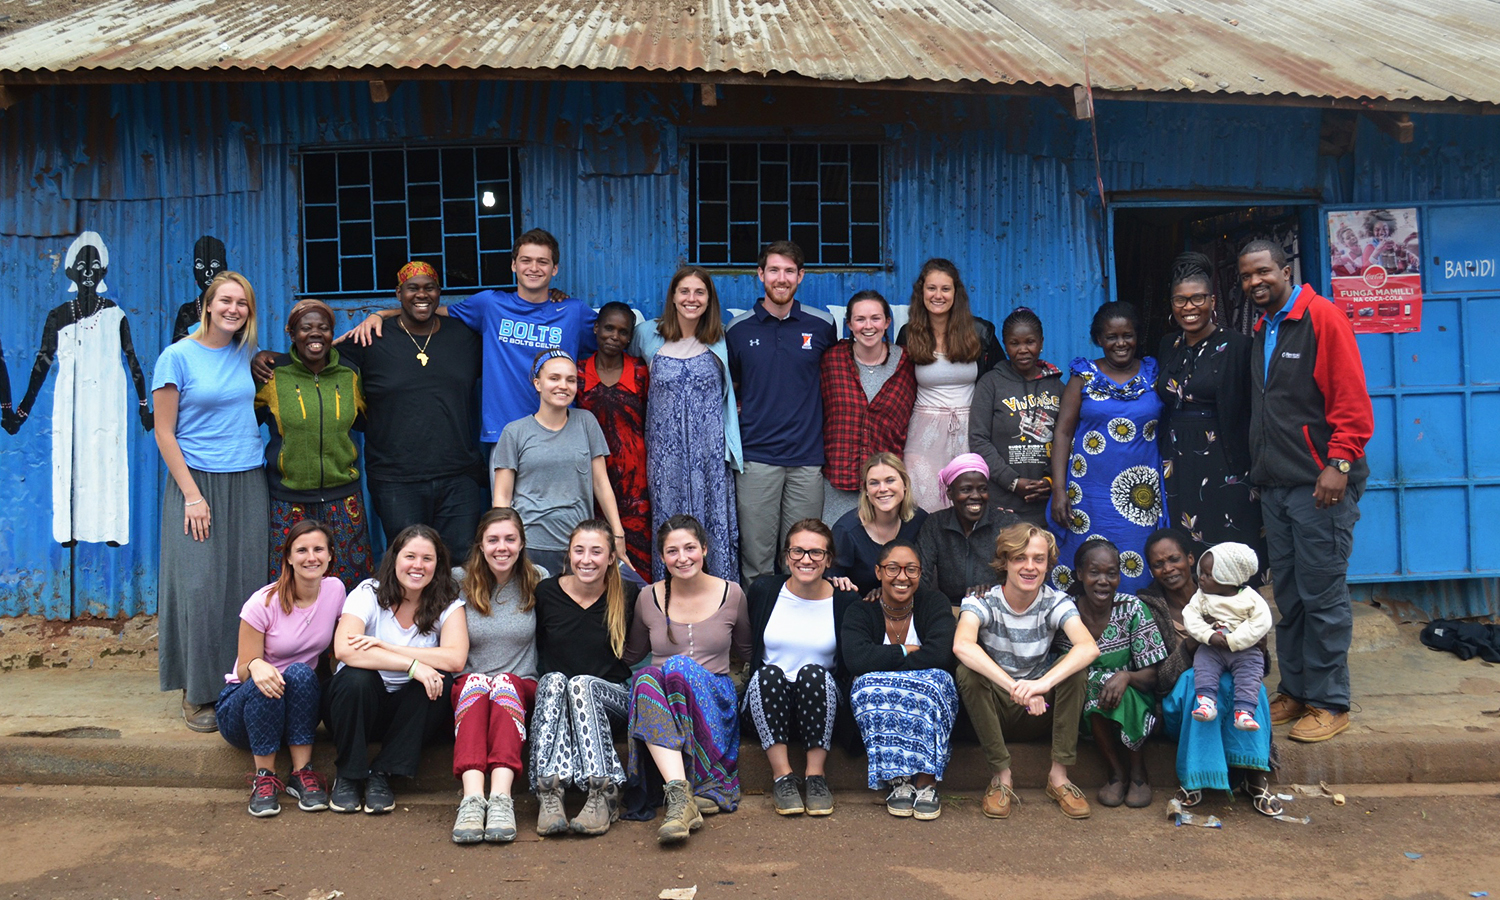 Students gather for a photo with members of the The Power Women, a group of 15 women in Nairobi, Kenya who work to reduce the stigma surrounding HIV and reduce poverty in in their community of Kibera.